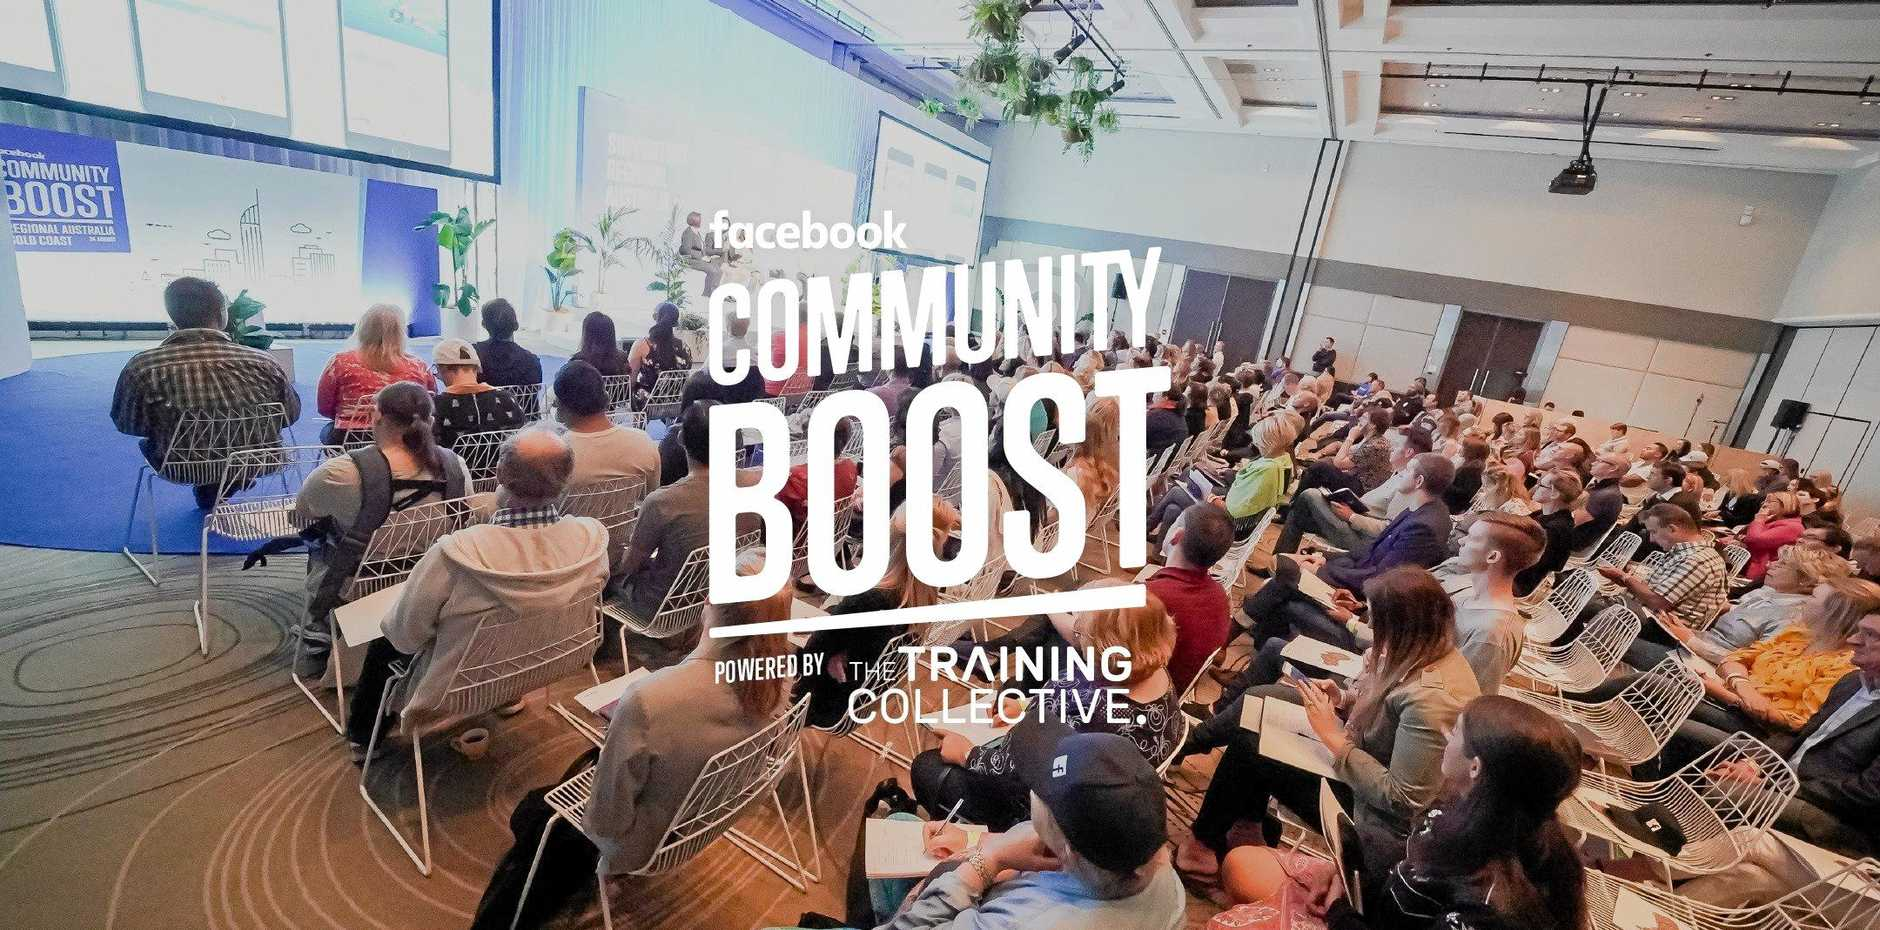 FACEBOOK WORKSHOPS: Facebook's Community Boost program is coming to Bundy tomorrow to run sessions for business owners.